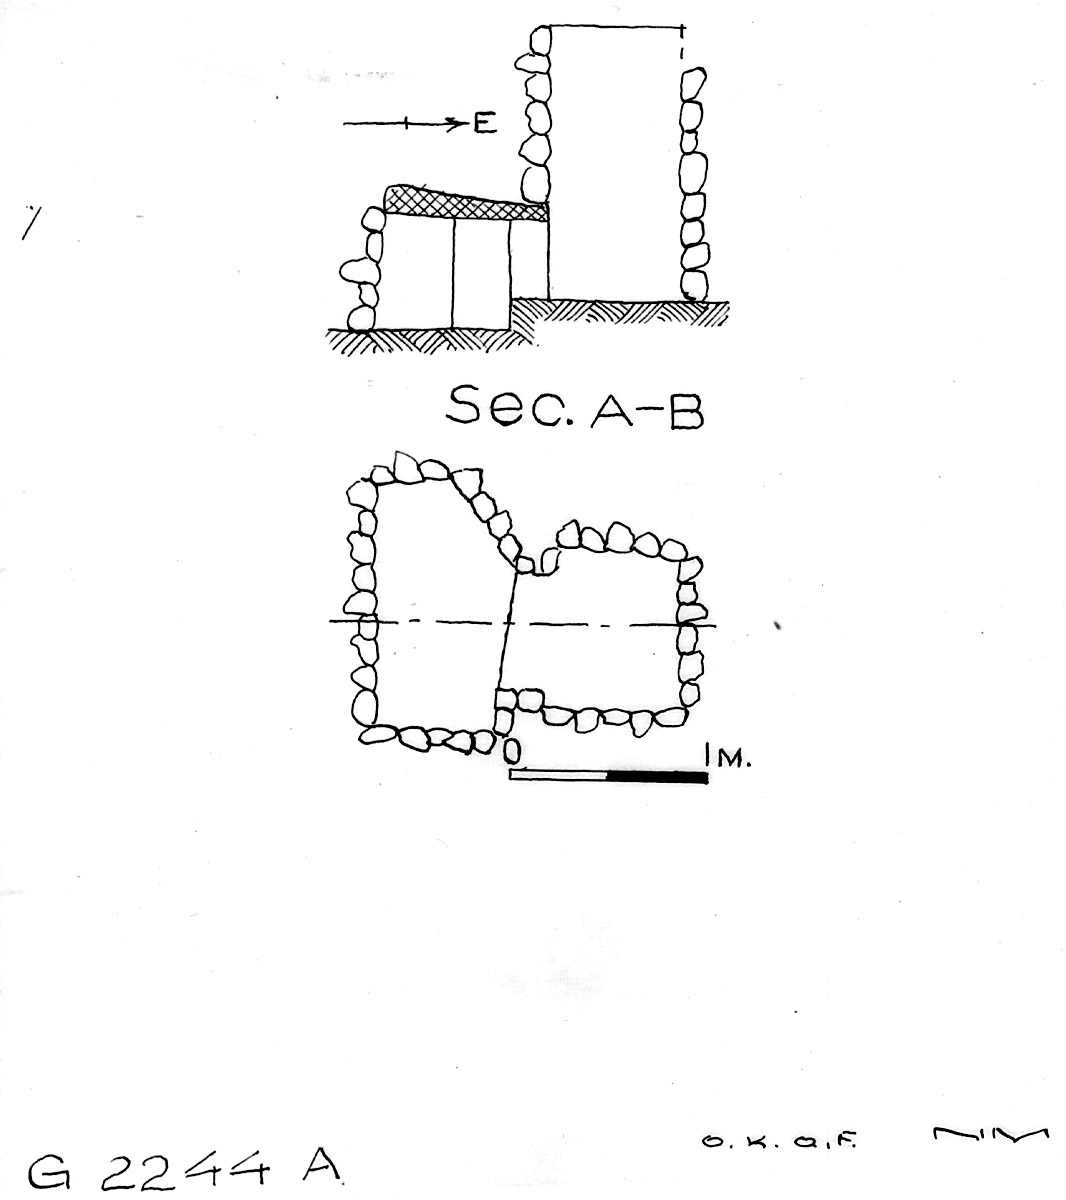 Maps and plans: G 2244, Shaft A